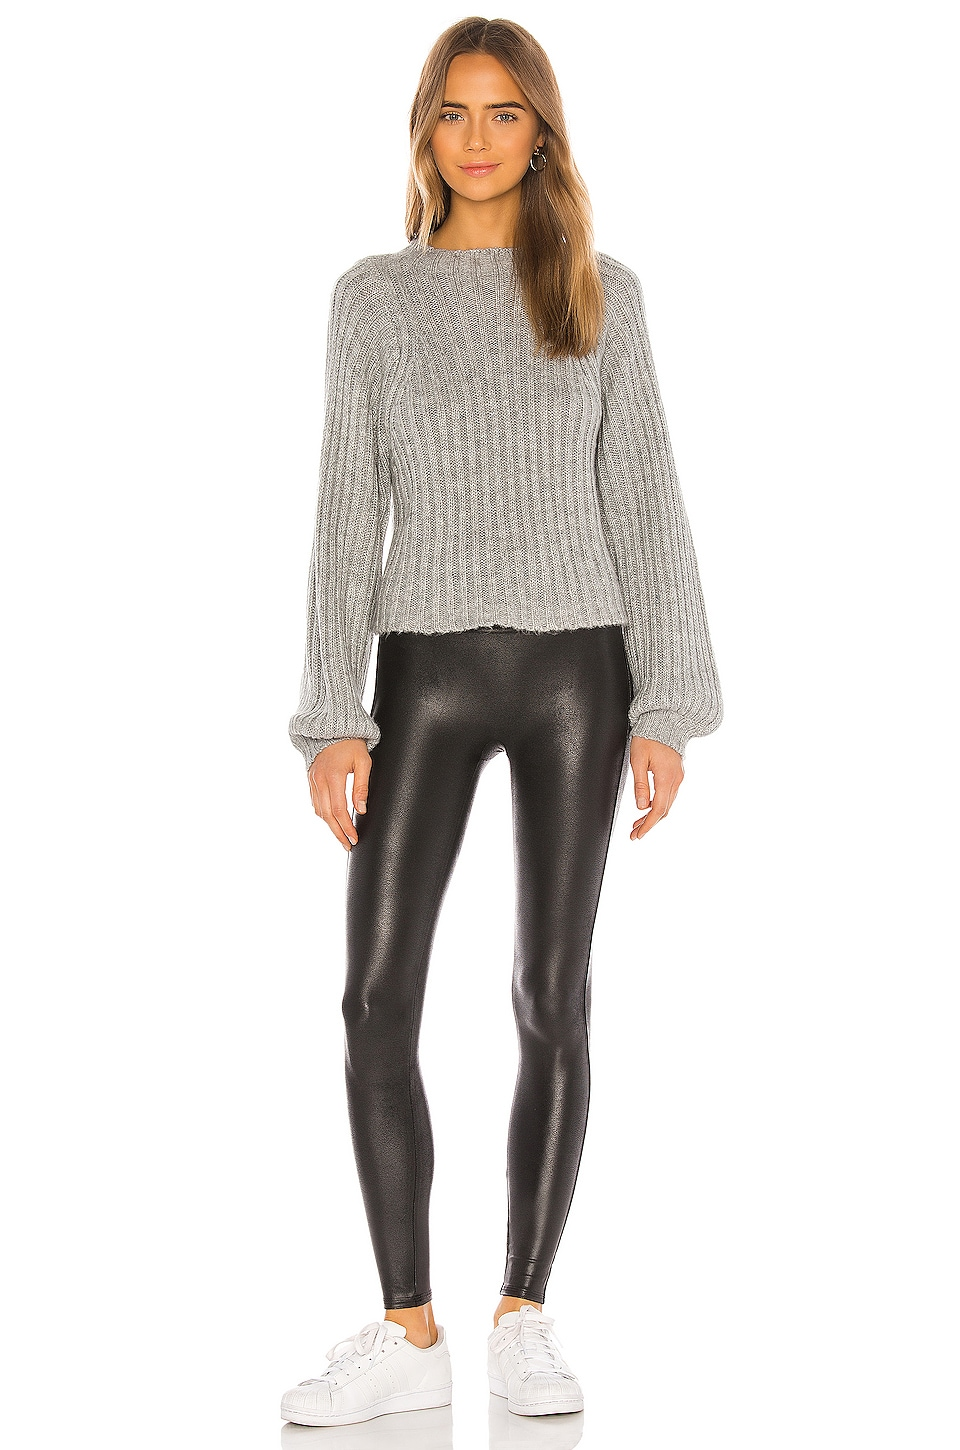 Petite Faux Leather Legging, view 4, click to view large image.